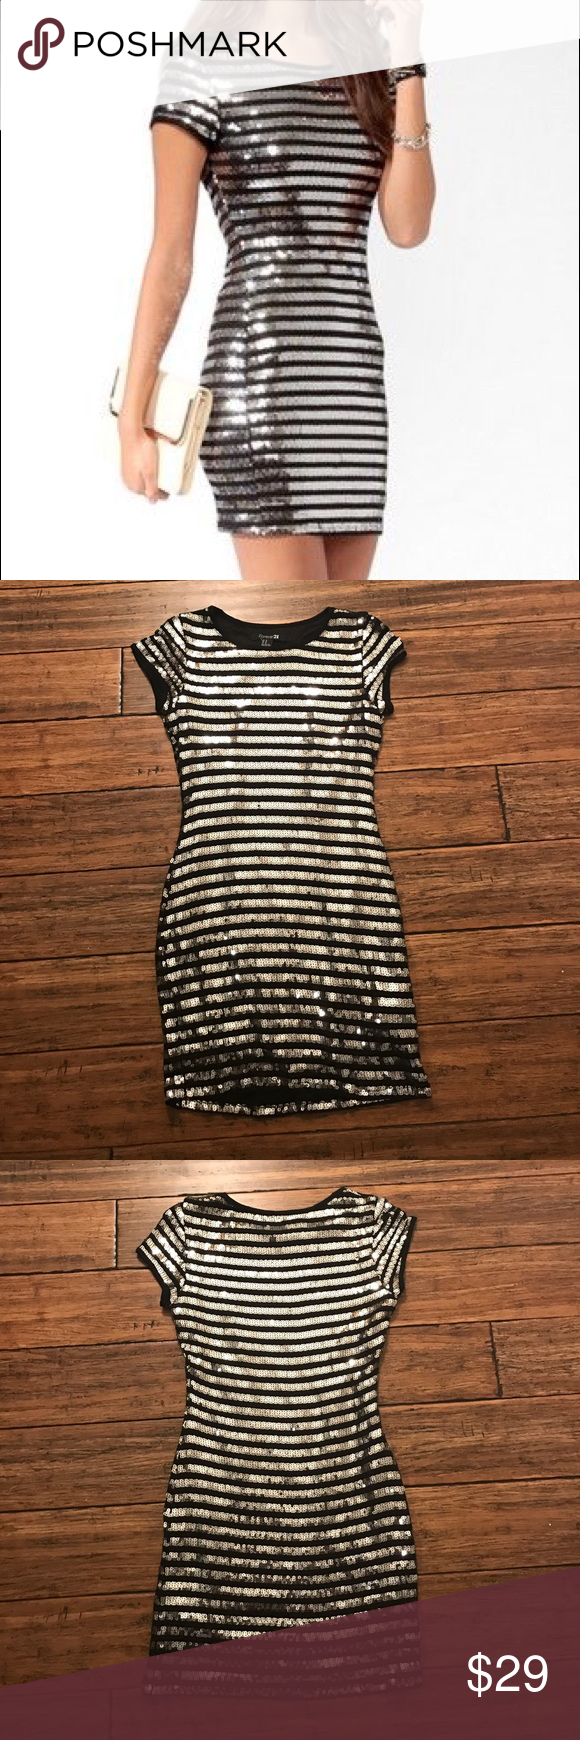 85a74d04 Forever 21 Black and Silver Striped Sequin Dress F21 striped Sequin dress.  Only worn once, perfect for a special occasion! Approx. 31.5